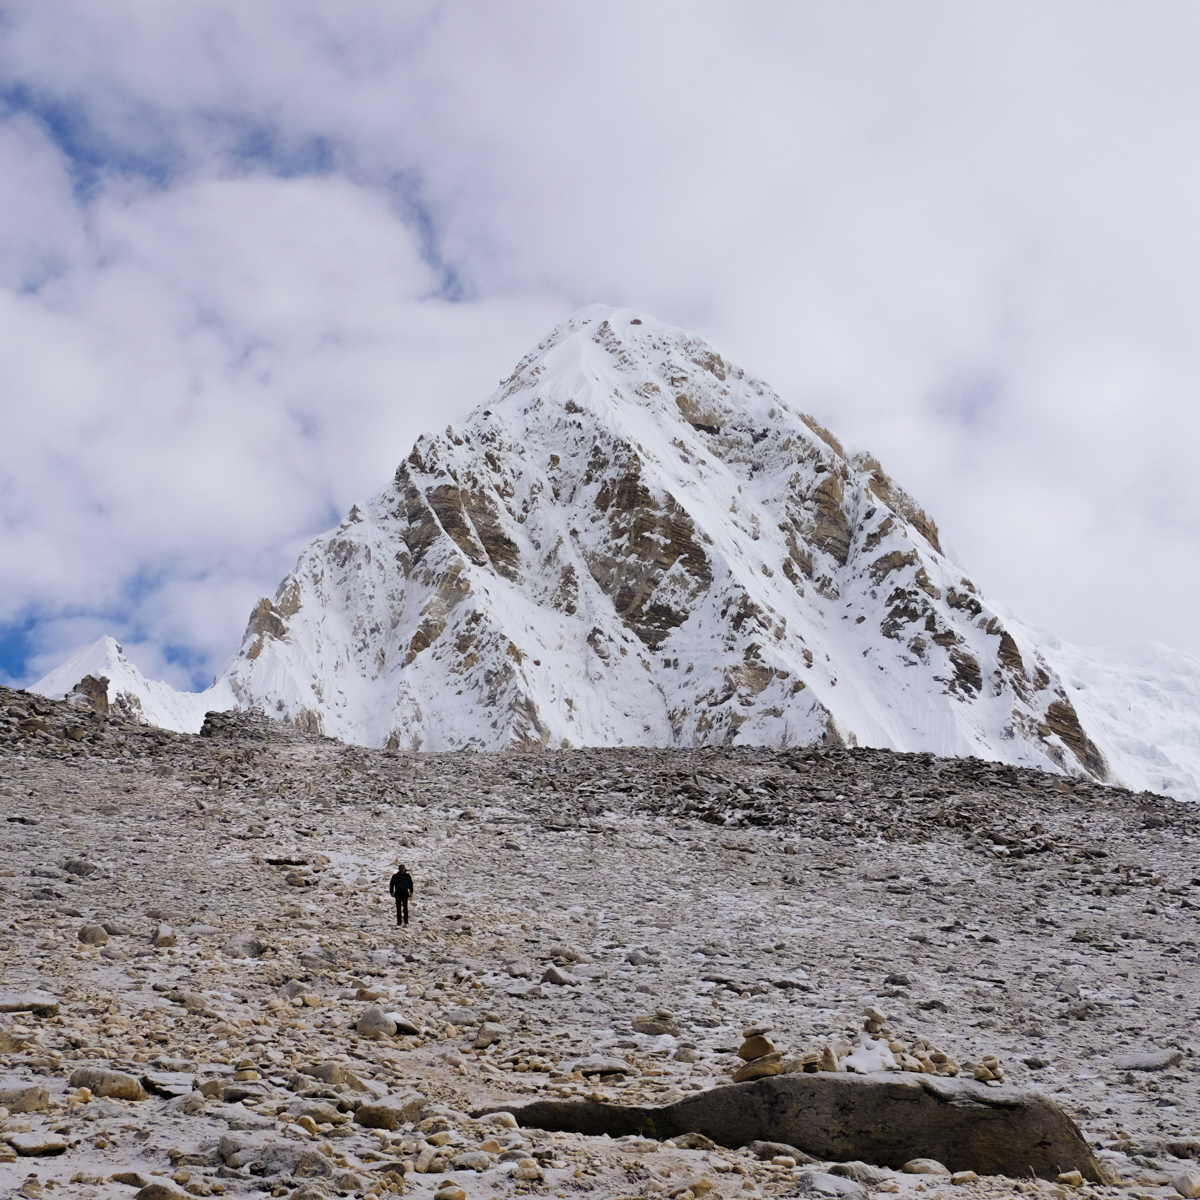 Kala Patthar & Gokyo, Everest 3 pass #3 14